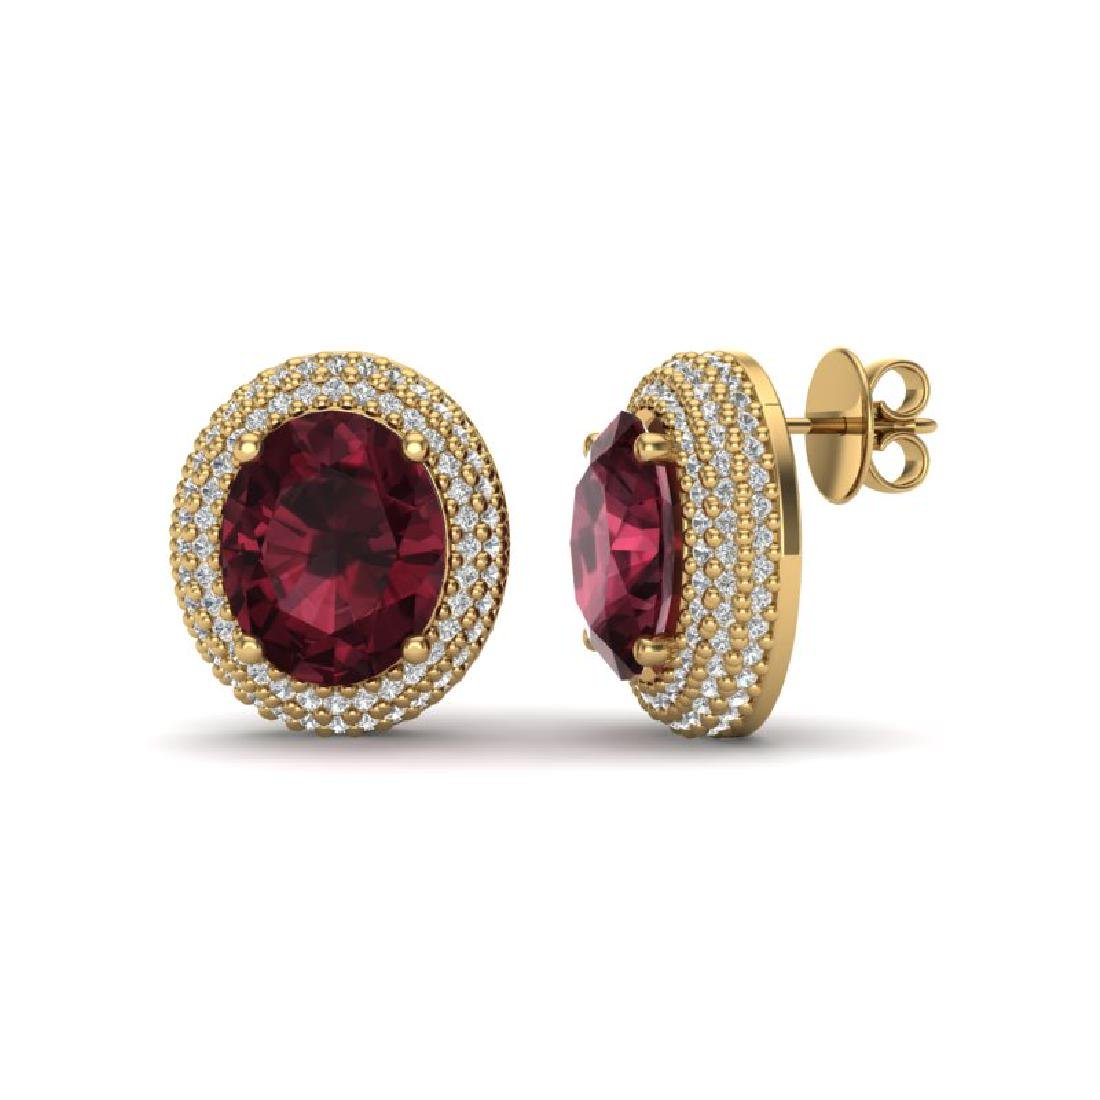 9 CTW Garnet & Micro Pave VS/SI Diamond Earrings 18K - 2